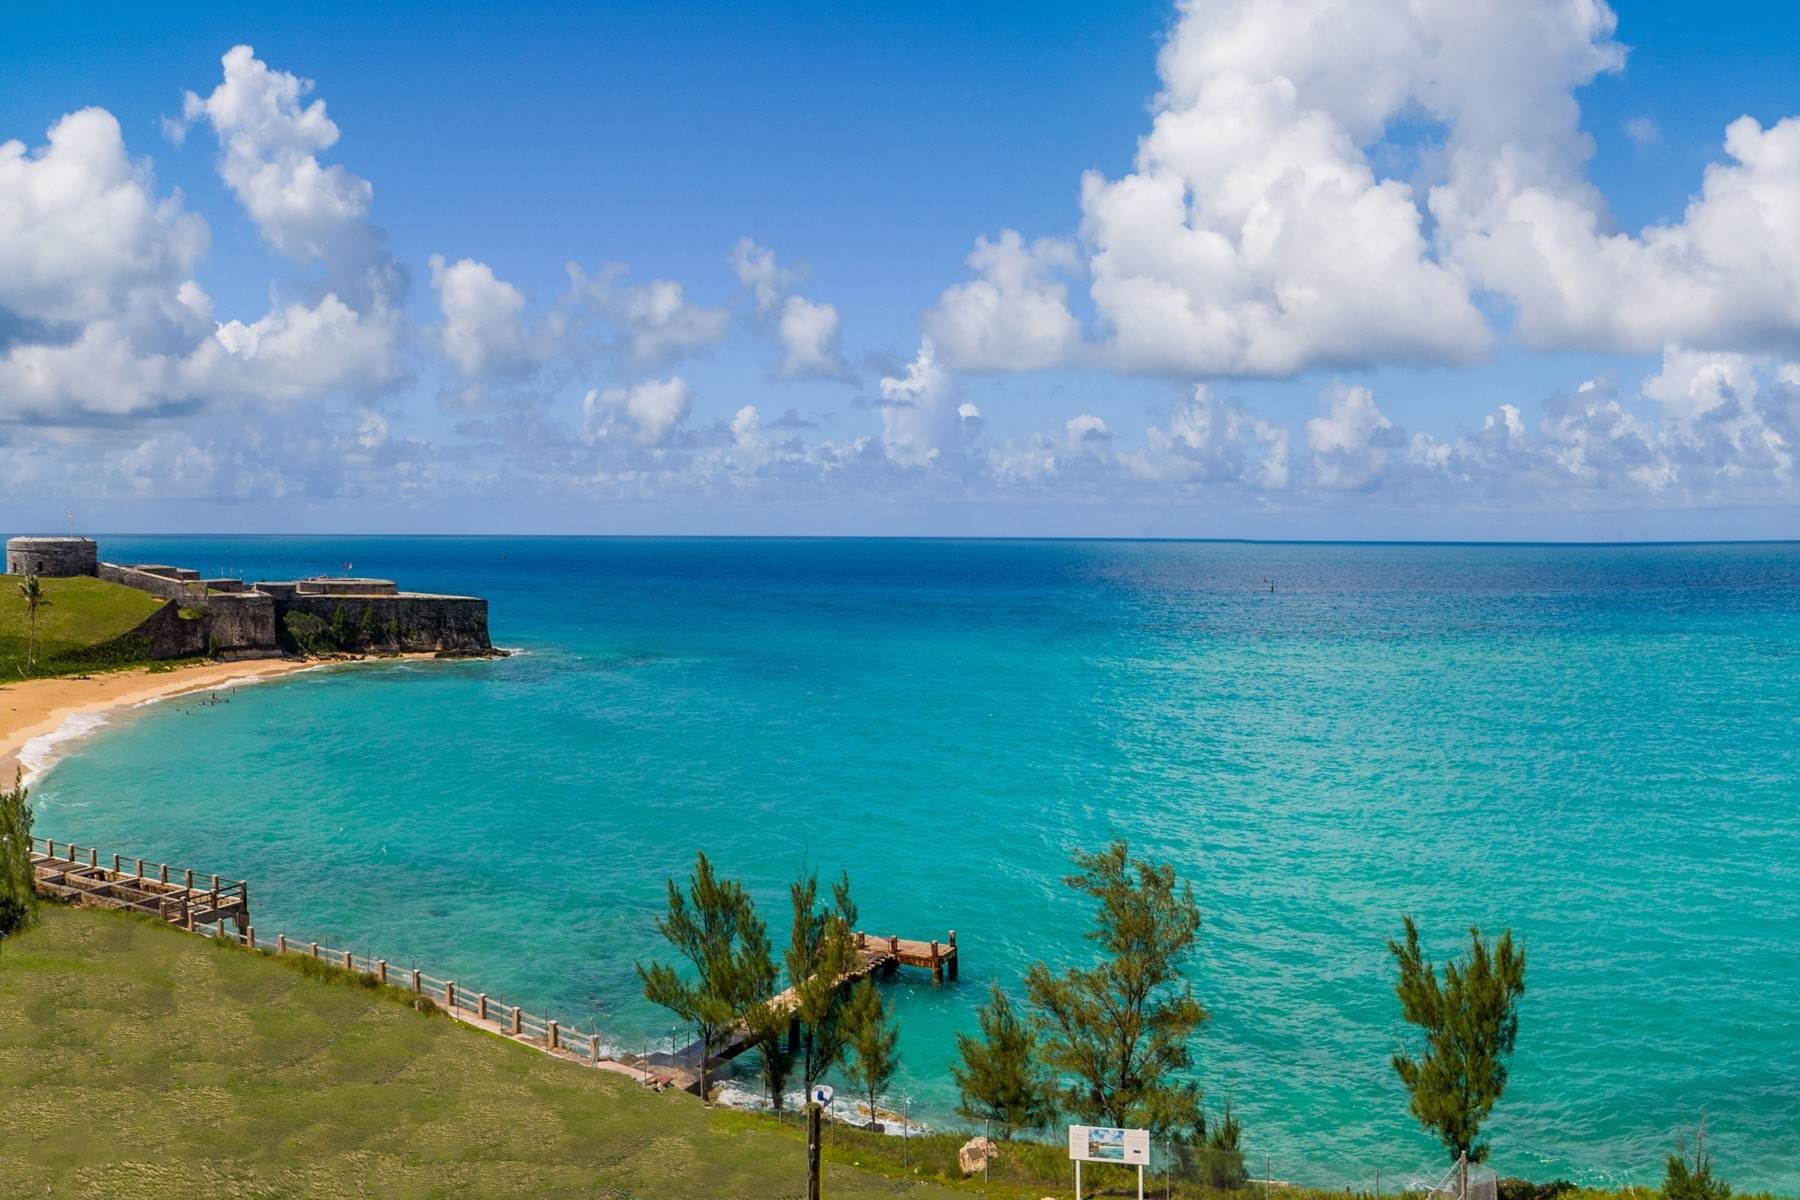 5. Condo / Townhouse / Flat for Sale at St. Regis Bermuda Residences - Gates Bay 4A, 4C St. Catherine's Beach St Georges Parish, GE03 Bermuda